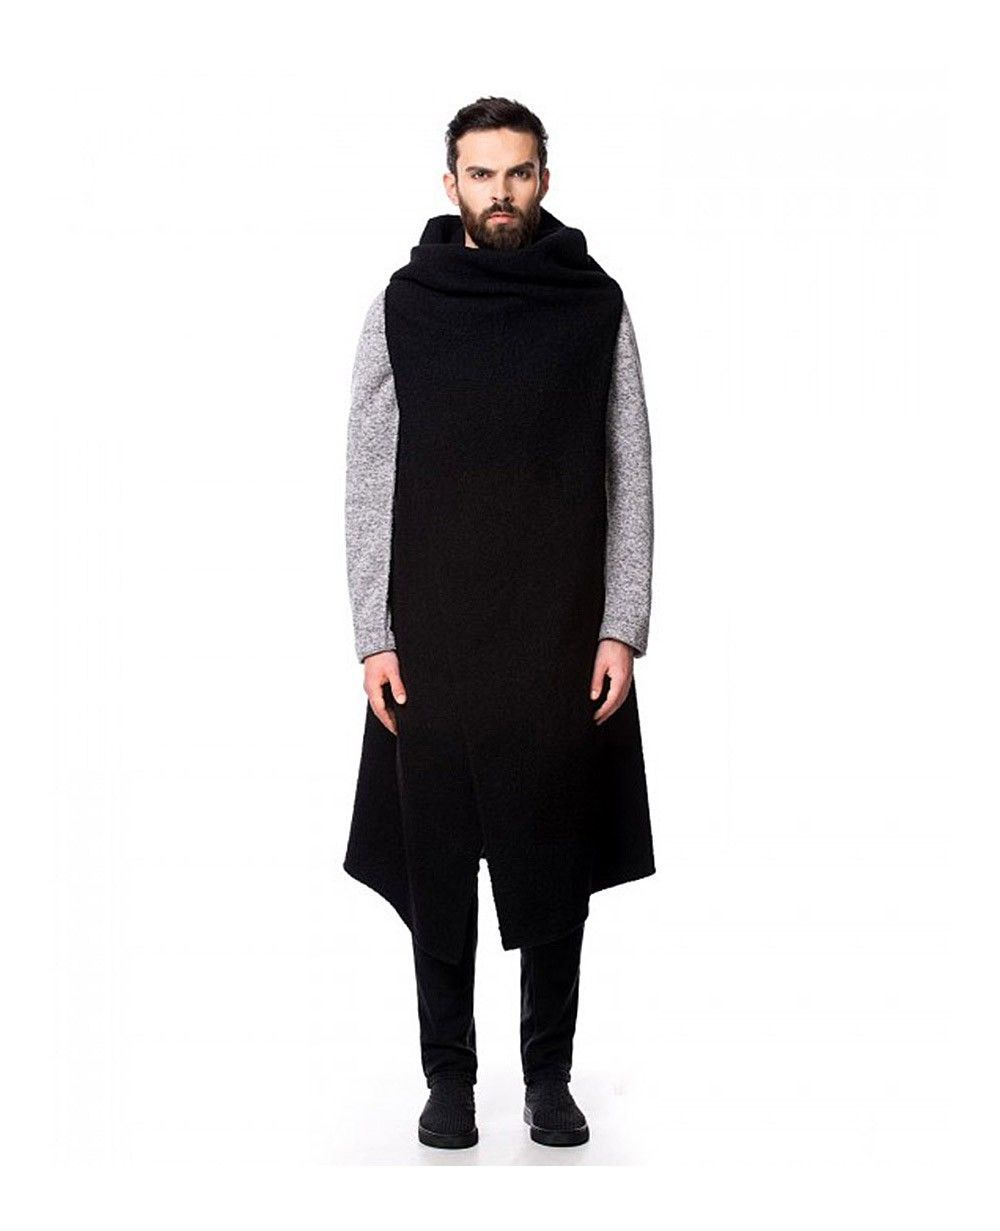 c82d2f45883 Shop the Sith Cape from Fusion Clothing   more rising brands at Flagship.  Free shipping